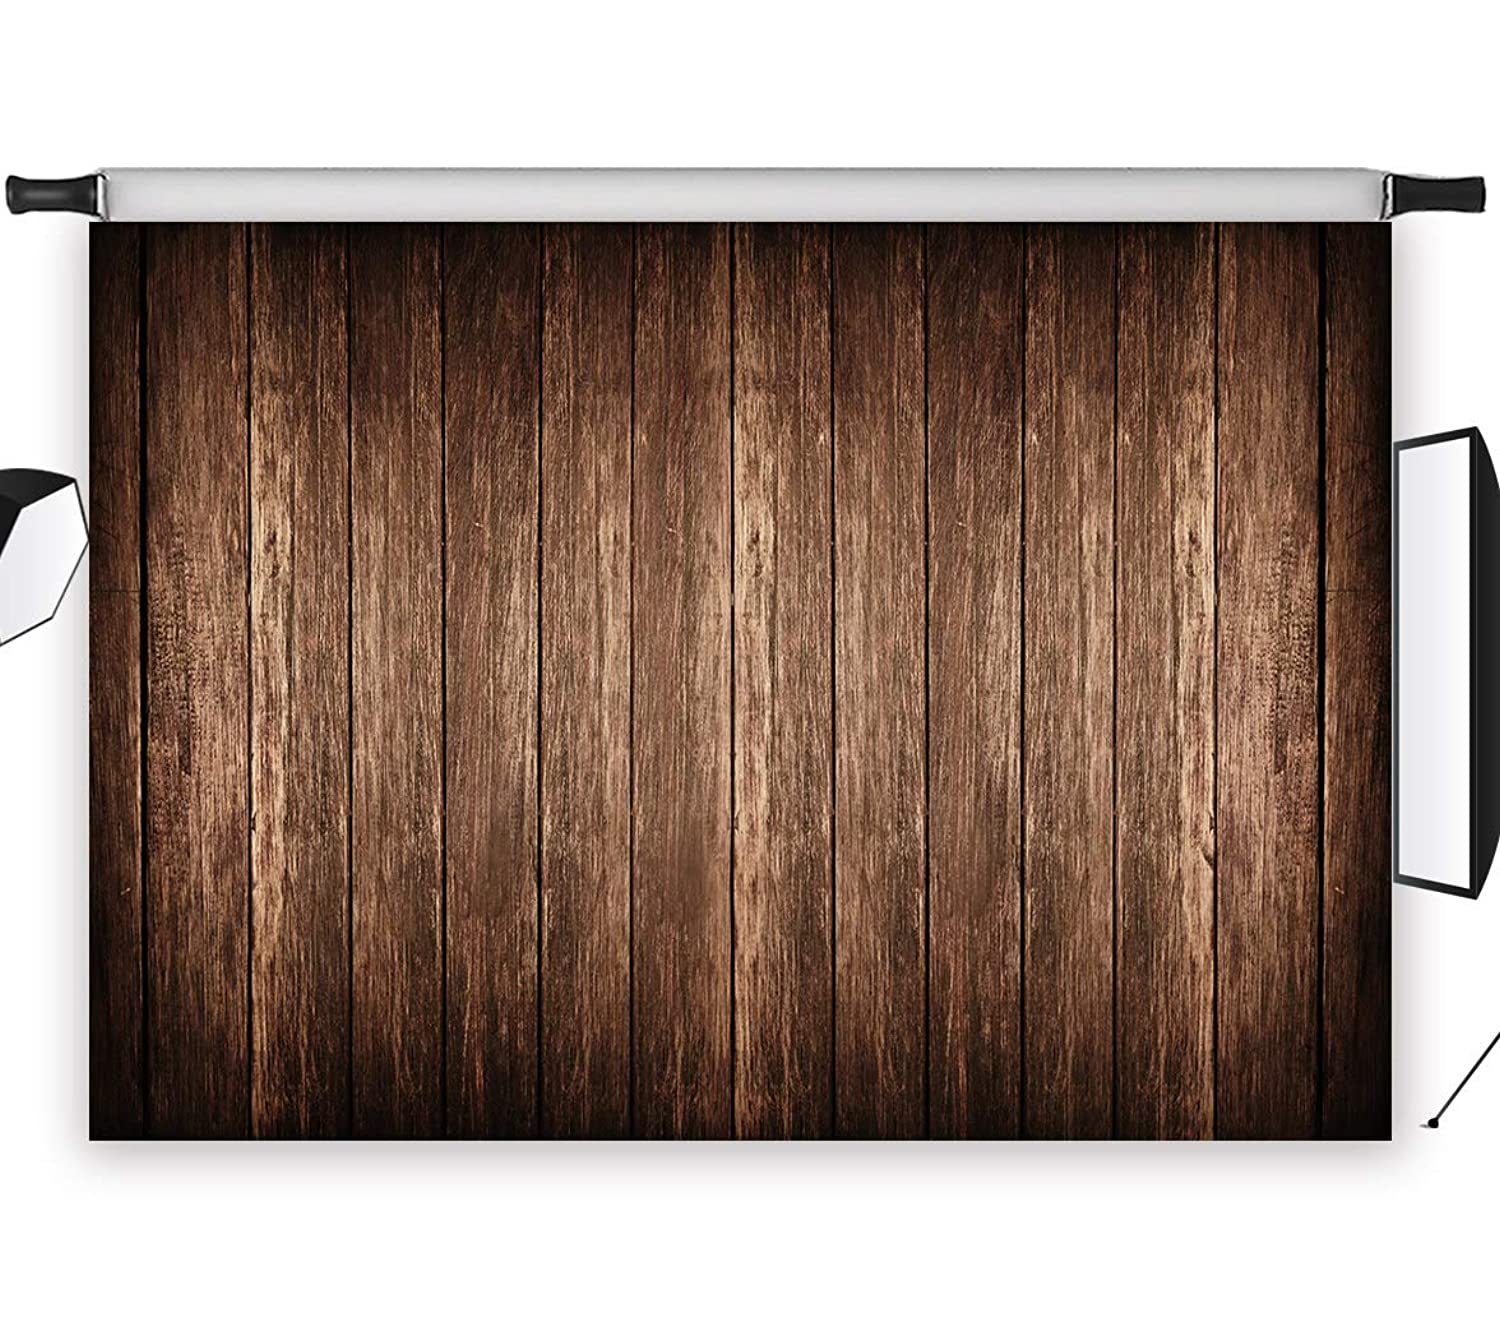 LB Dark Black Brown Rustic Barn Wood Backdrops for Photography Vintage Wooden Floor Photo Background Baby Shower Cake Smash Banner Customized Vinyl 7x5ft Studio Props DZ854